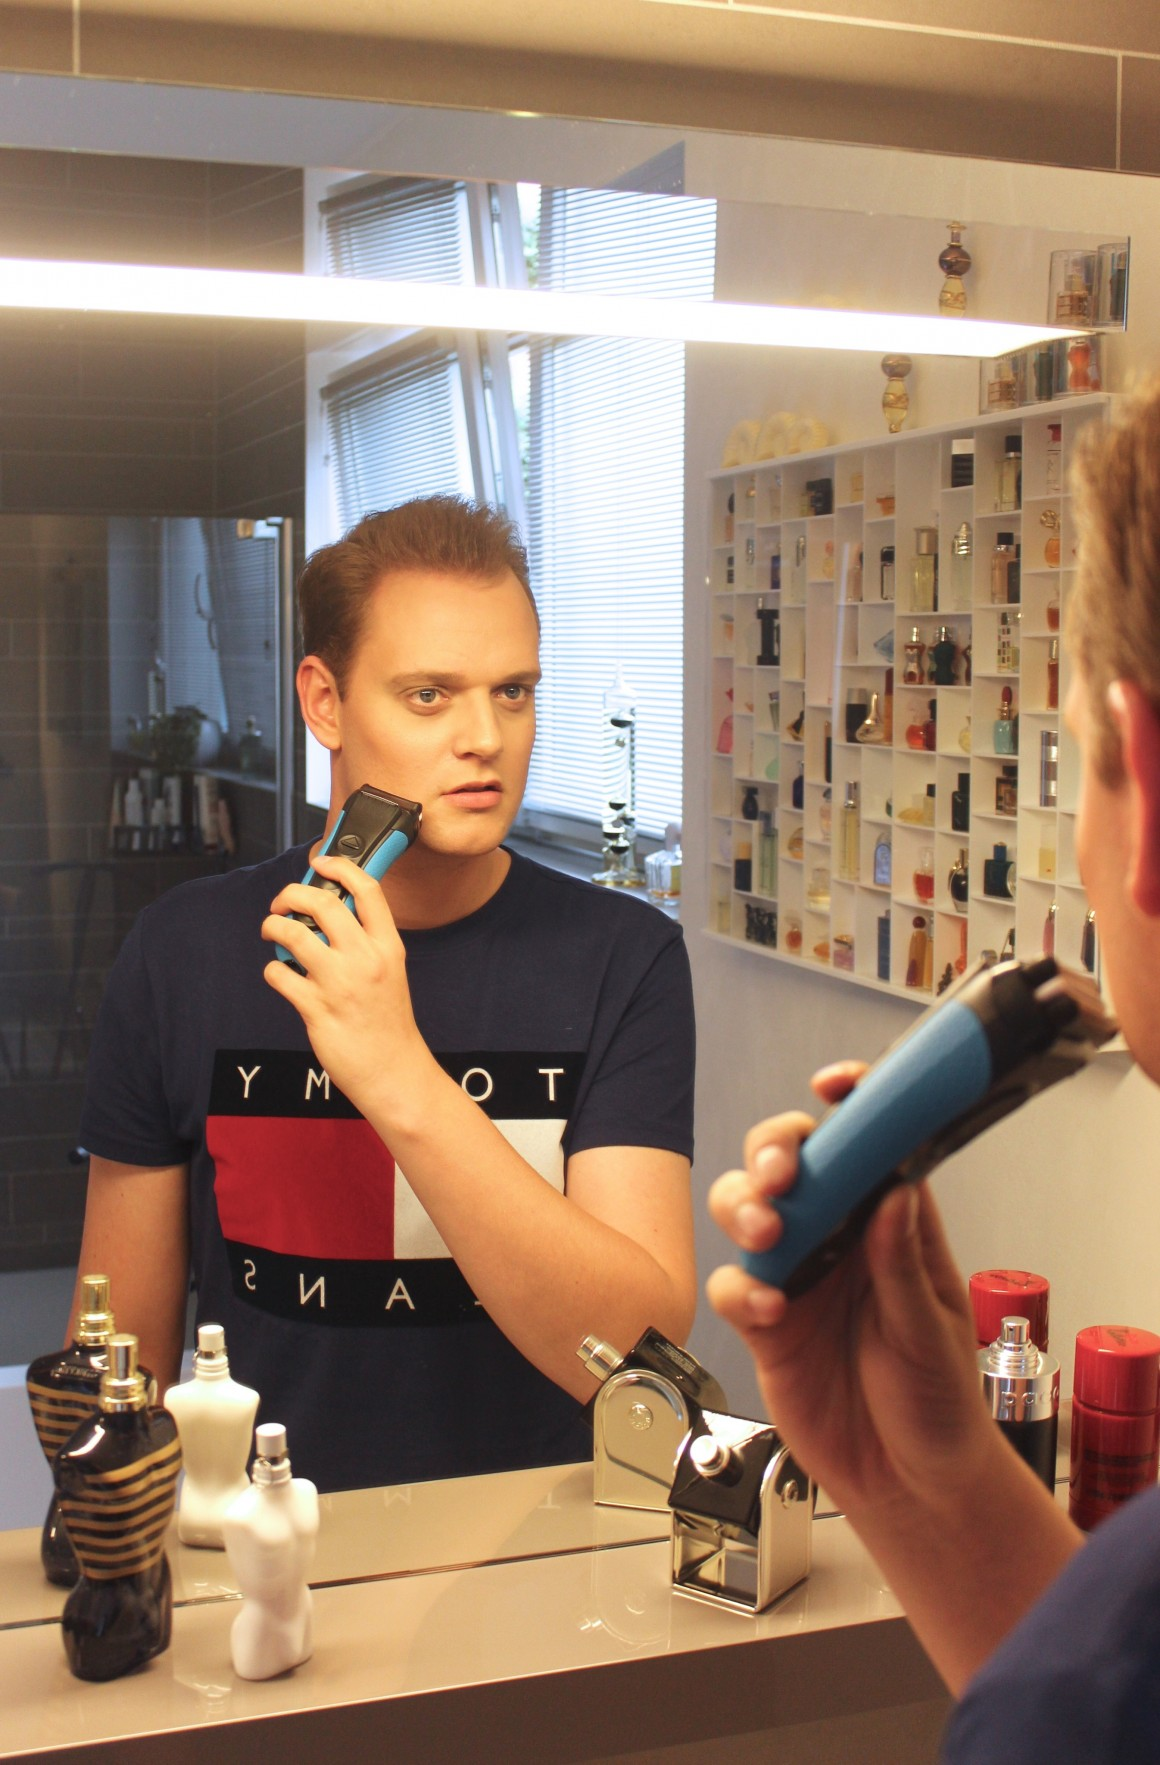 New Grooming Routine ft. Braun Series 3 Pro Skin - JustKVN menswear and lifestyle blog